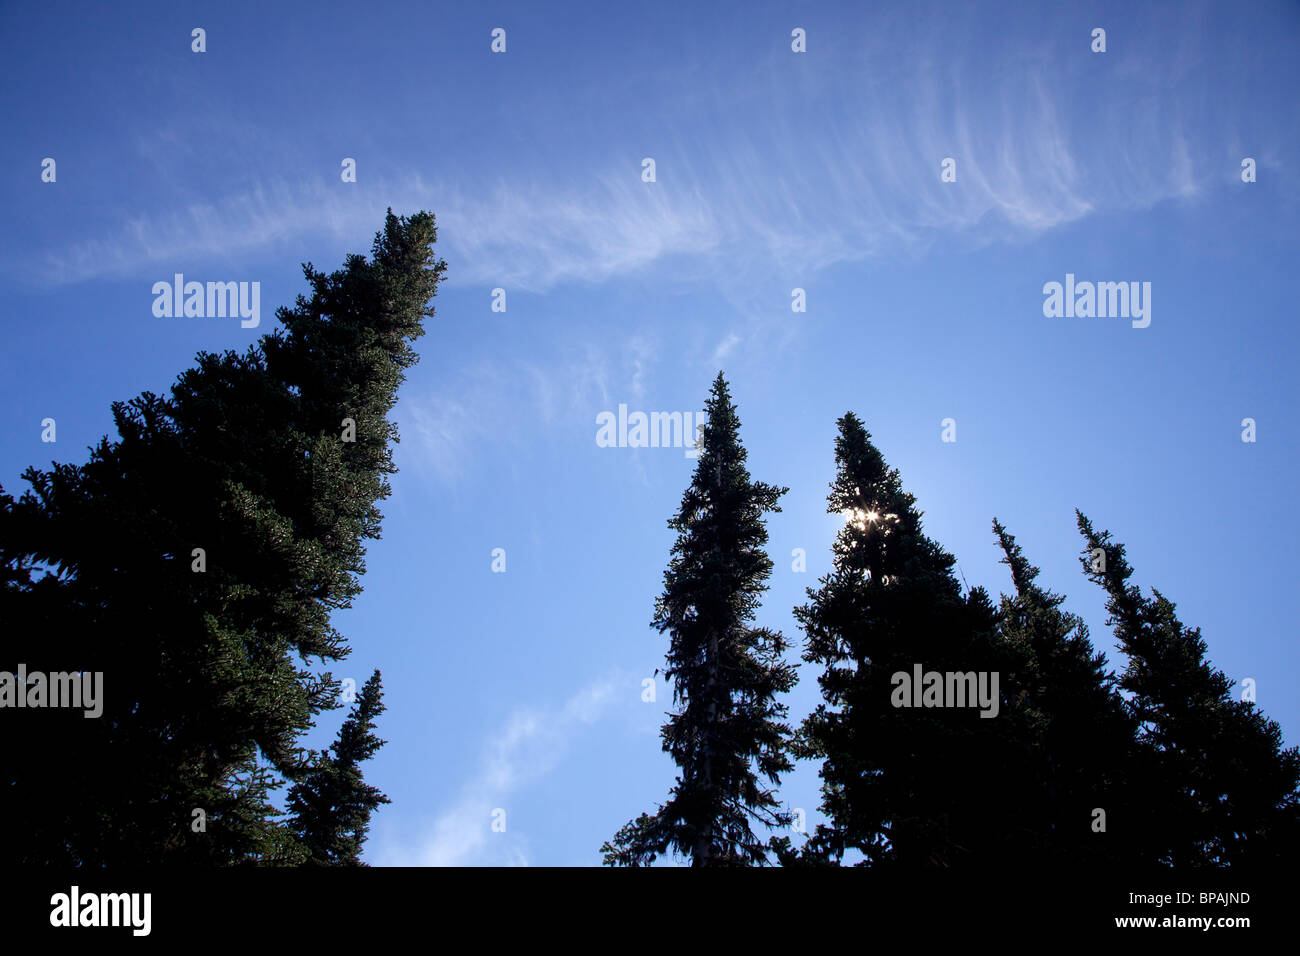 Fir trees and sun. Mount Rainier National Park, Washington. - Stock Image